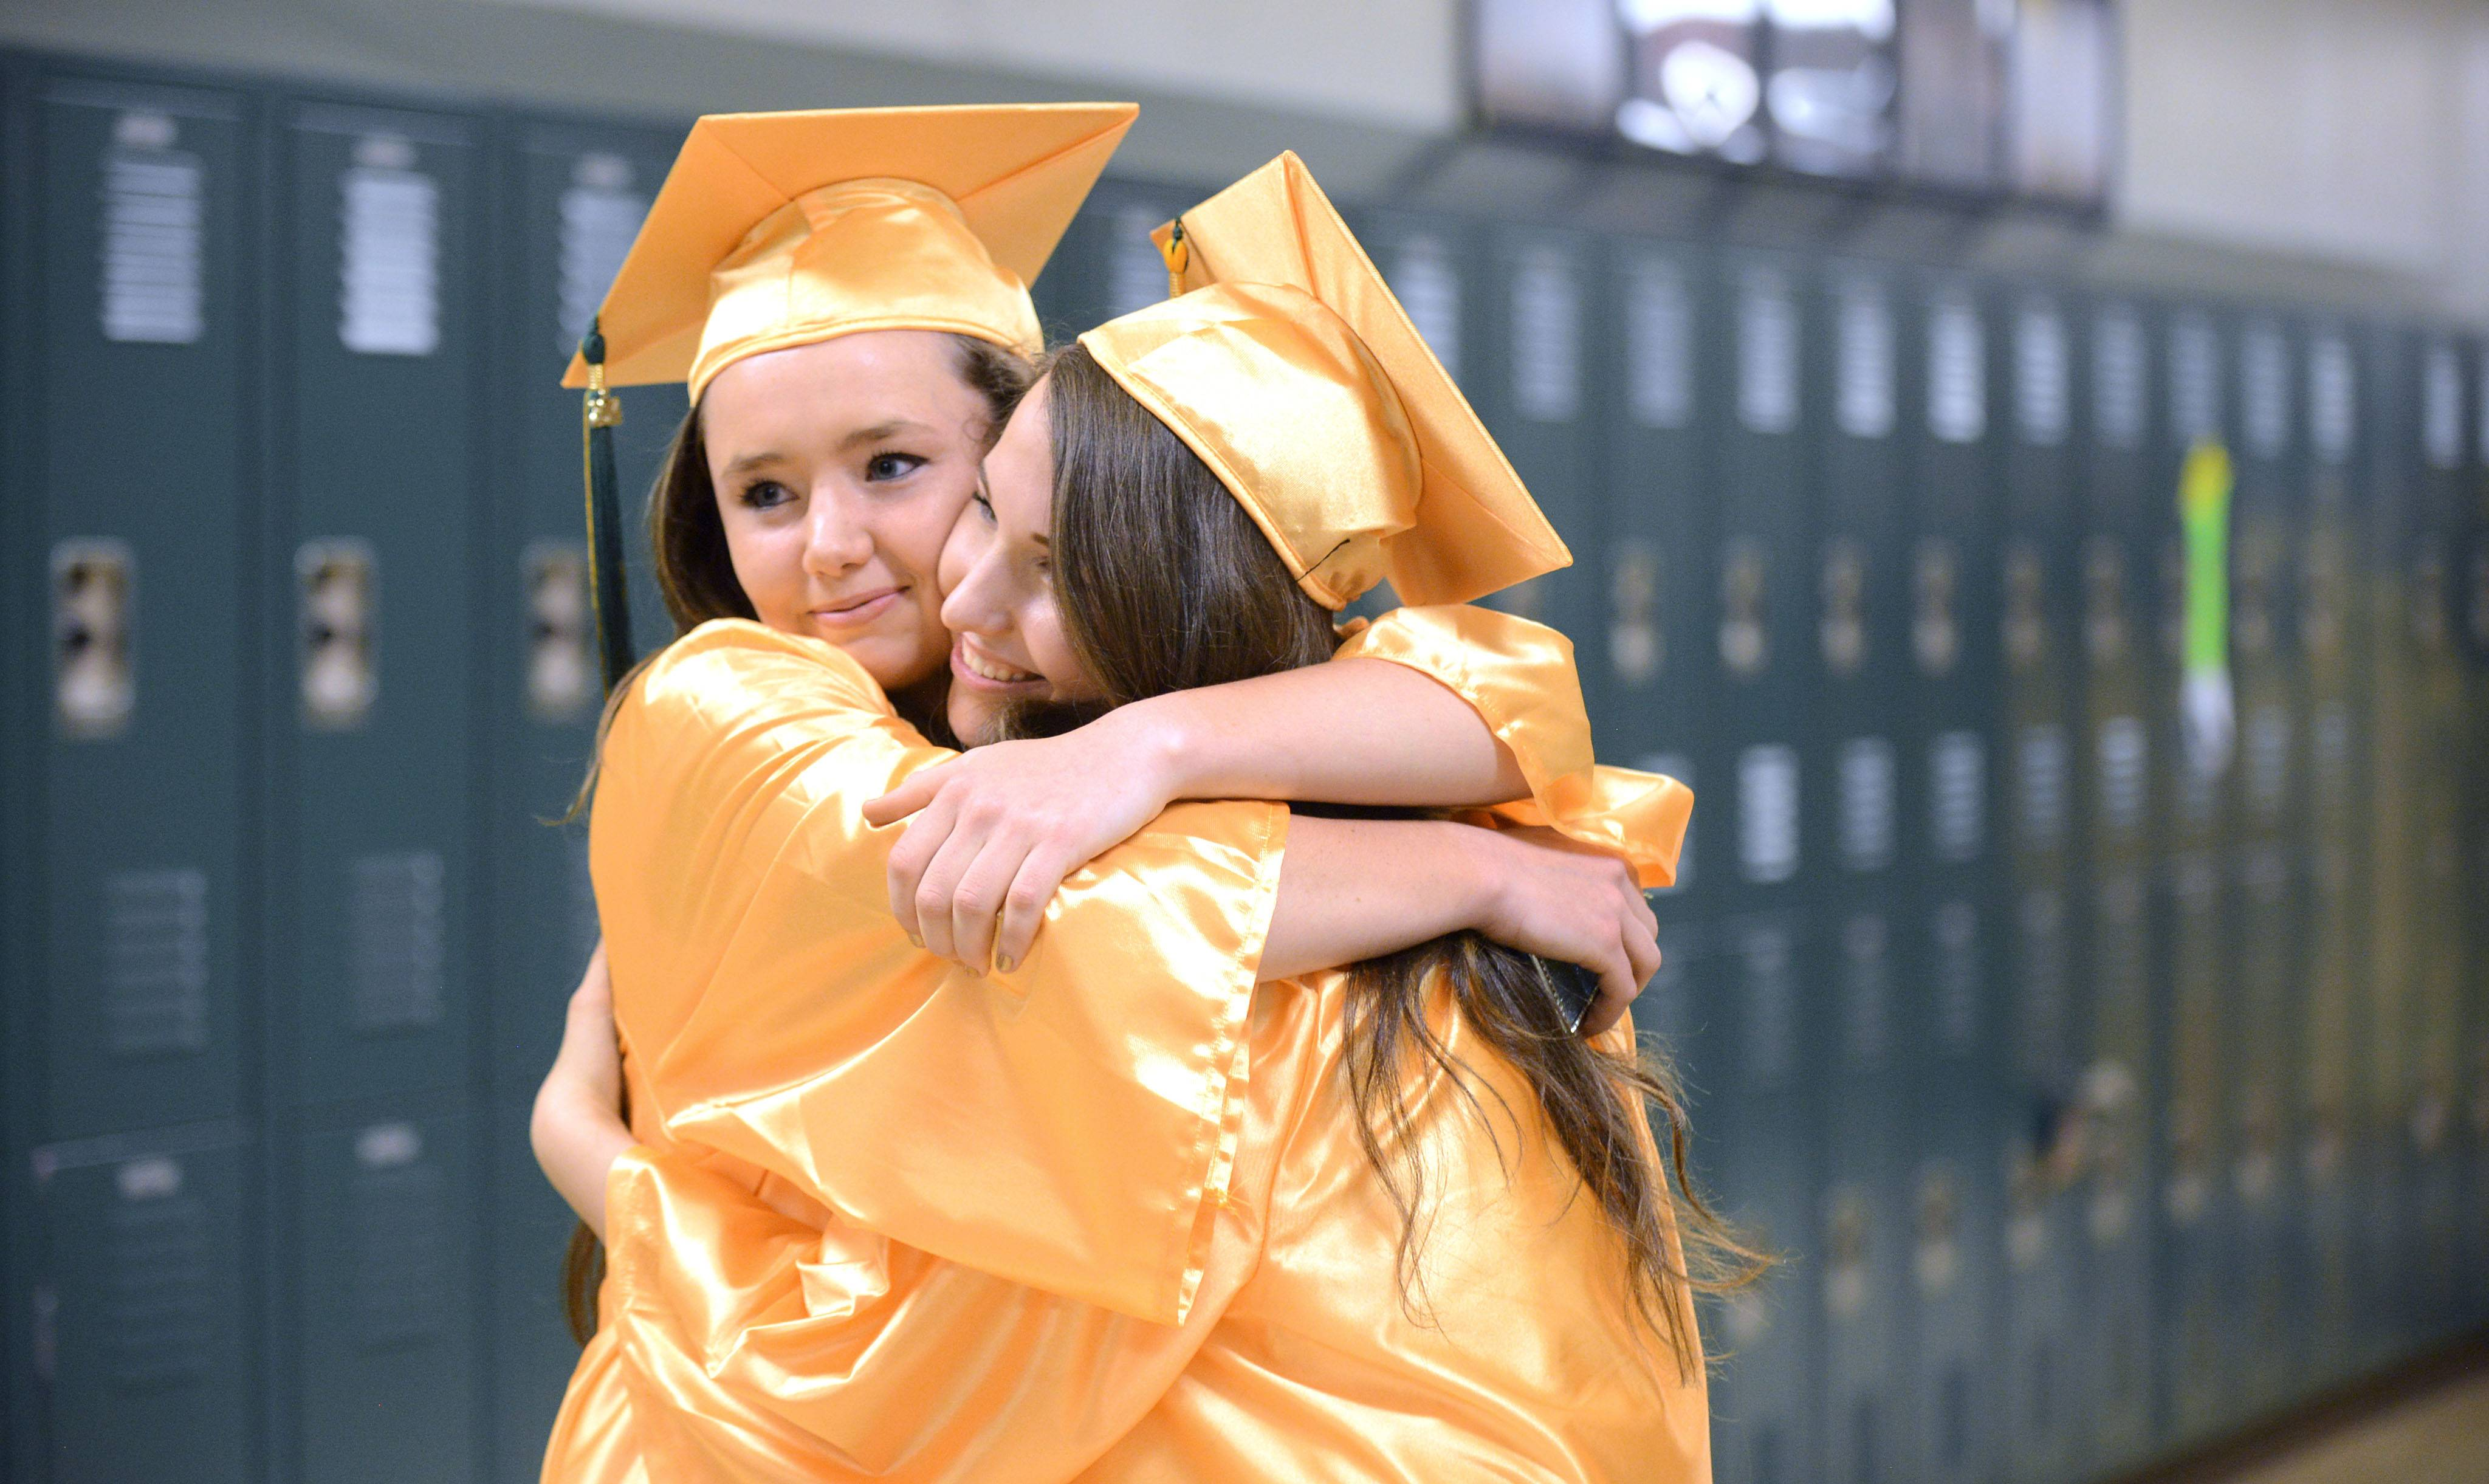 Crystal Lake South graduates Sydney Barnett, left, and Zoe Godsted share a tight hug before going to their assigned classrooms to away their commencement ceremony on the football field on Saturday, May 31.